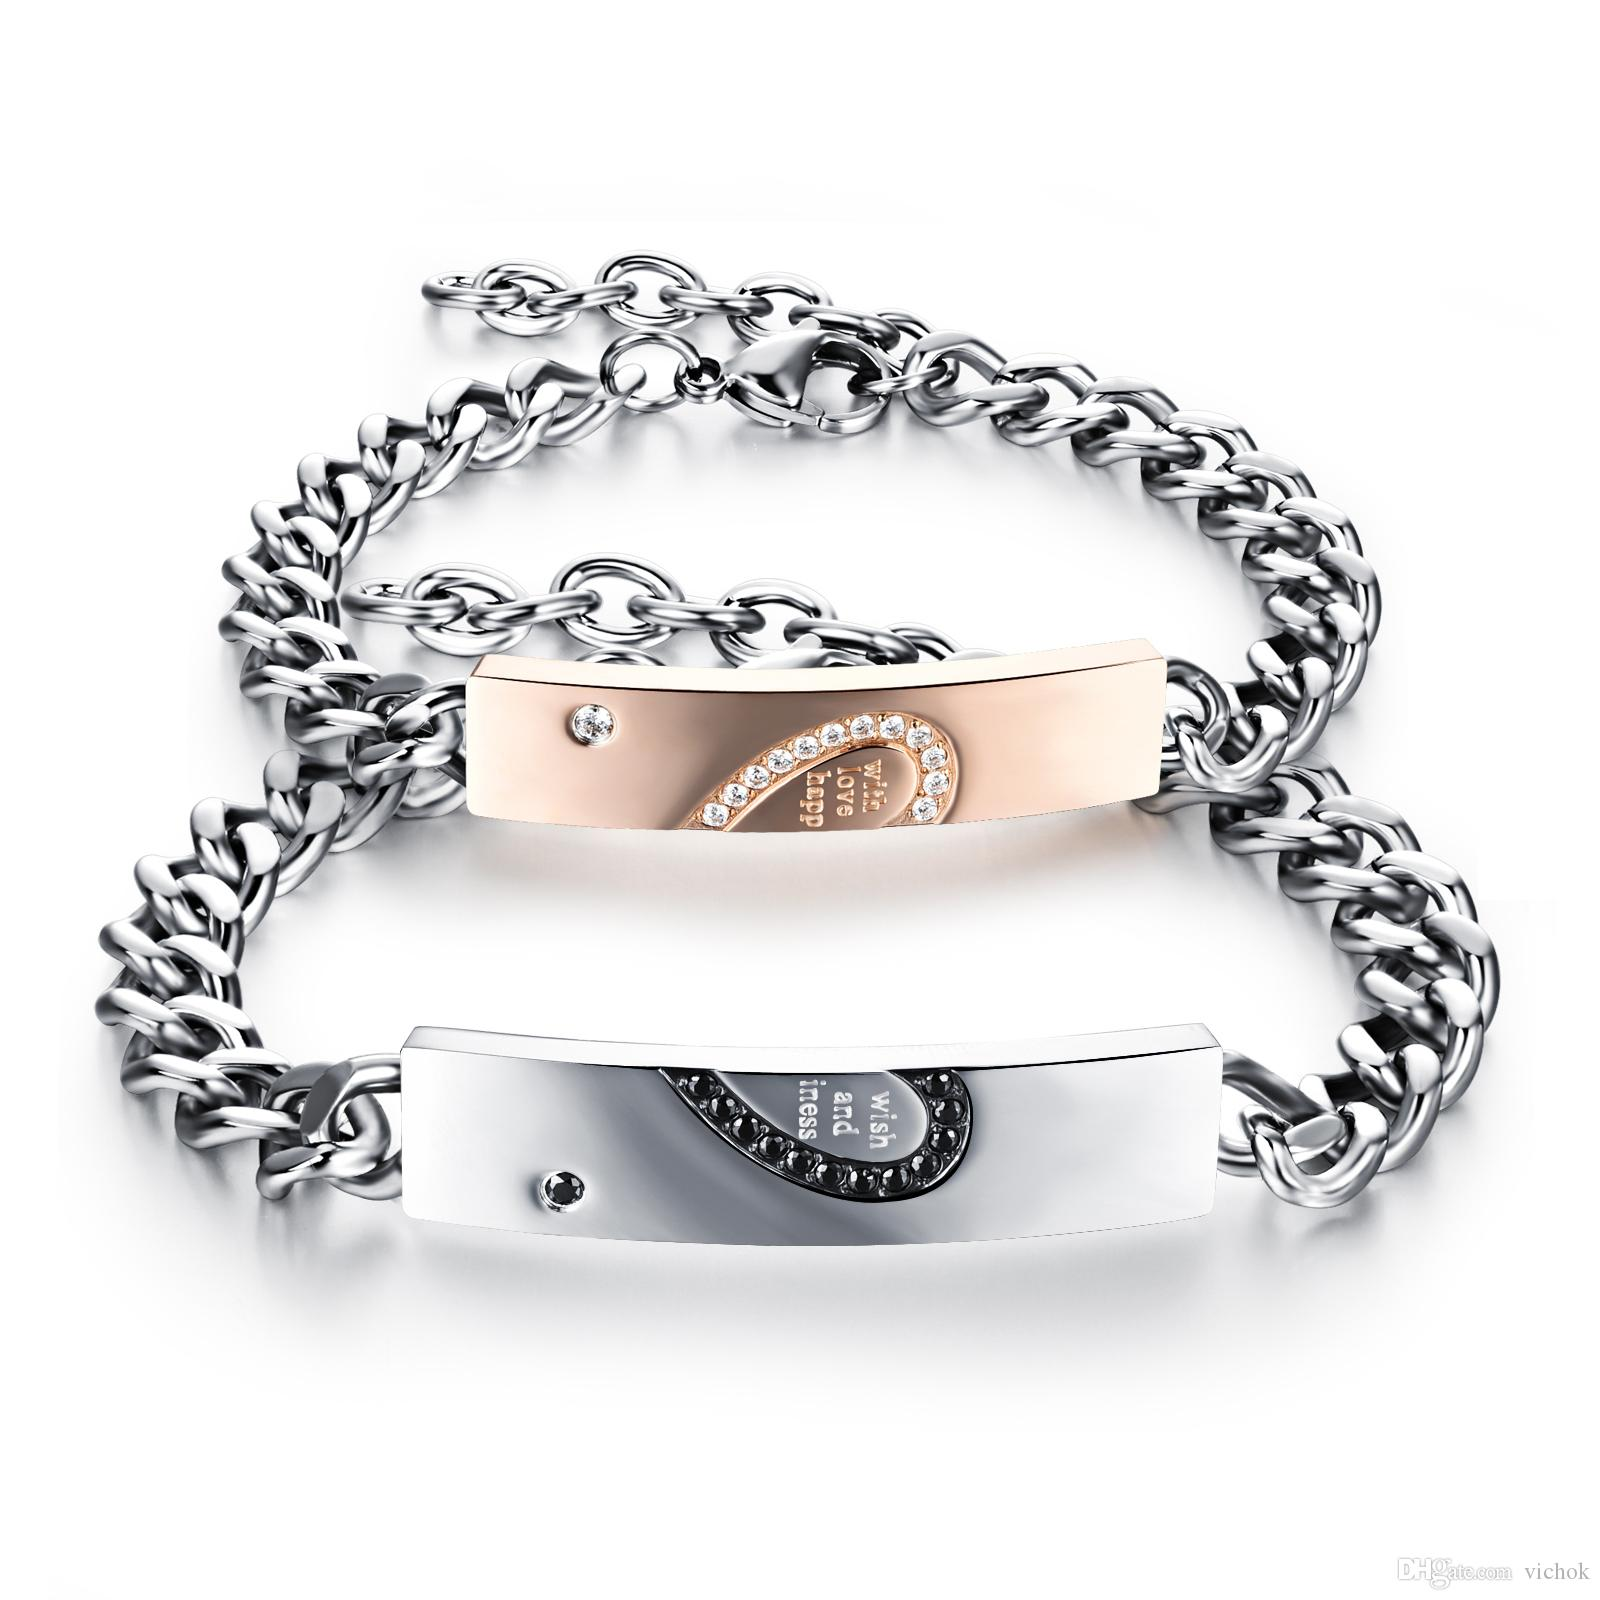 Vichok Punk Ropck 316L Stainless Steel ID tag Couple Bracelet Curb Chain Polish Men Women Jewelry for Gift